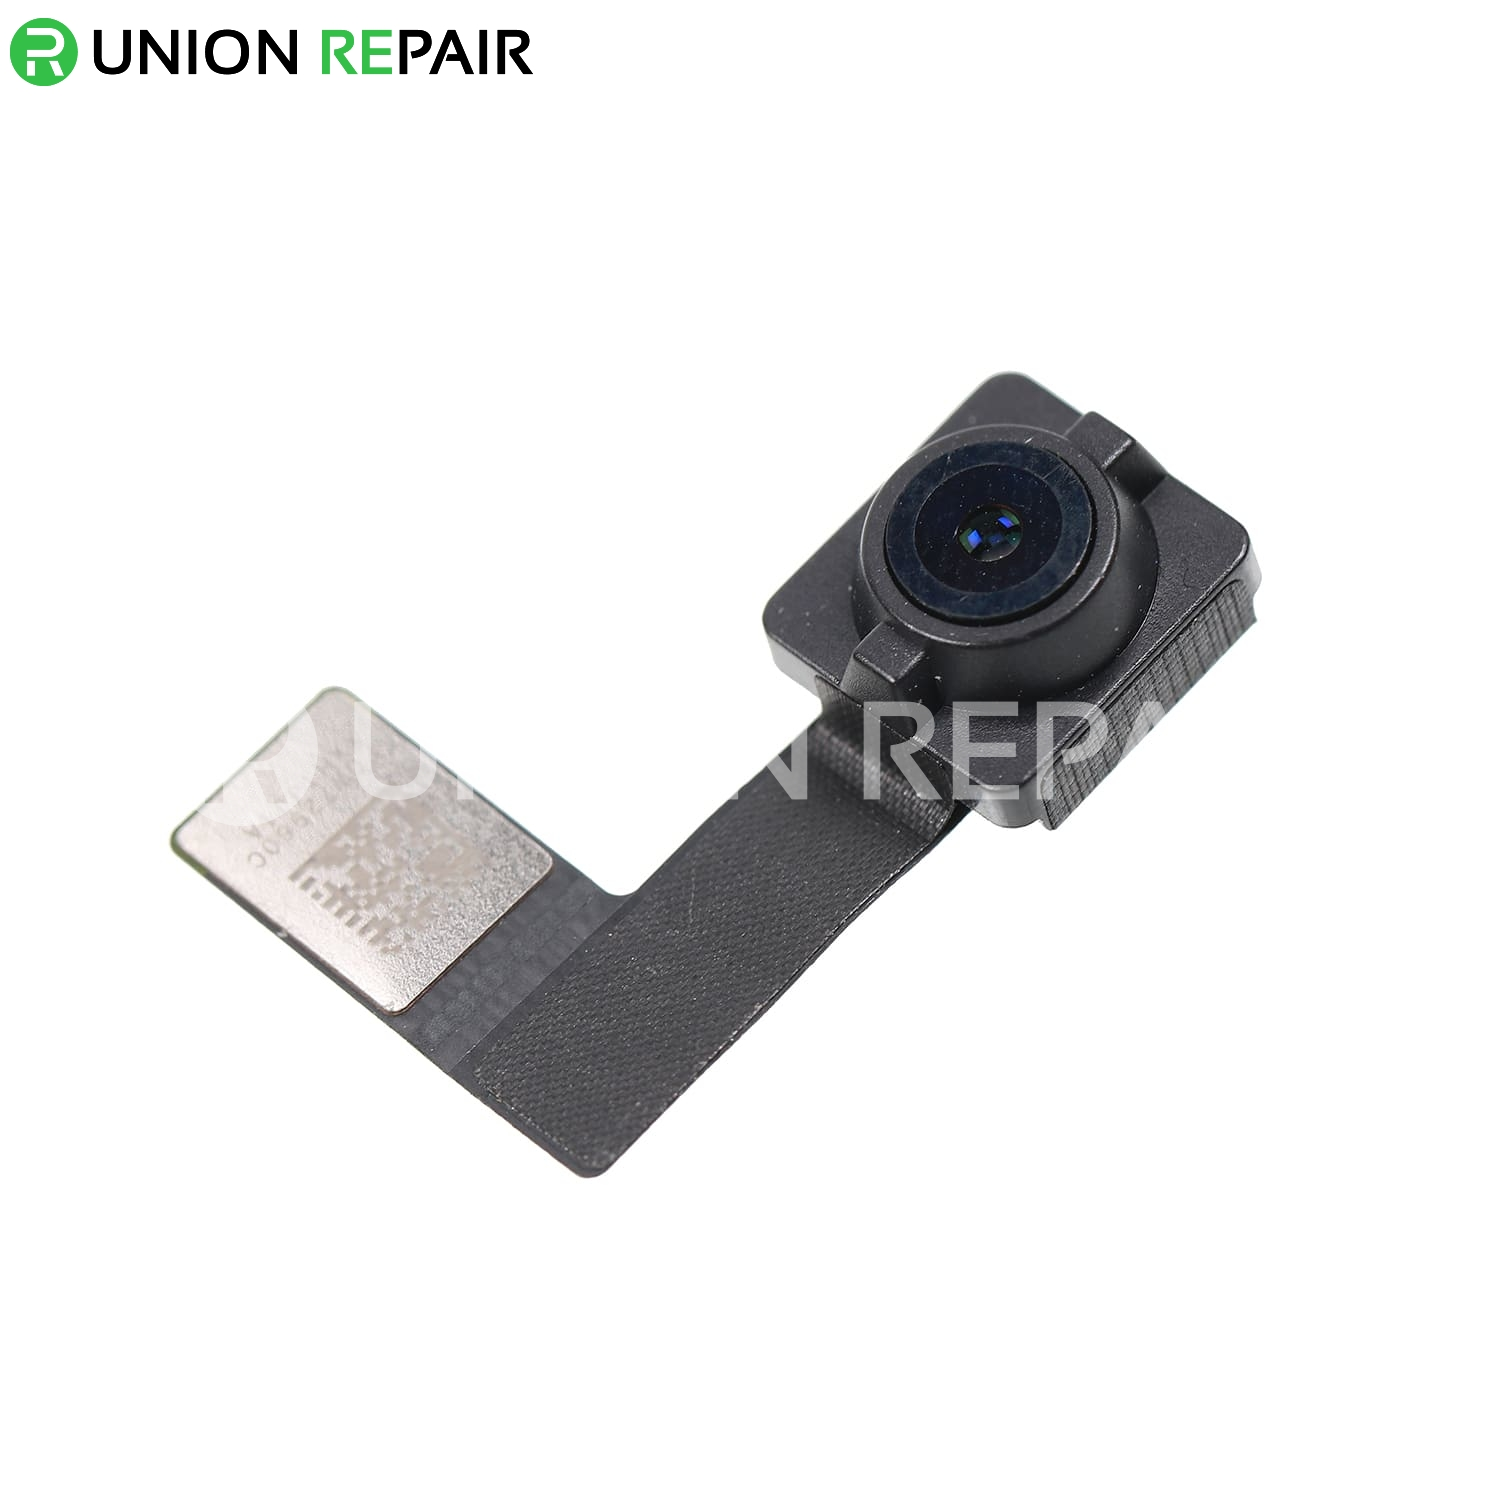 Replacement for iPad Mini 5 Front Facing Camera